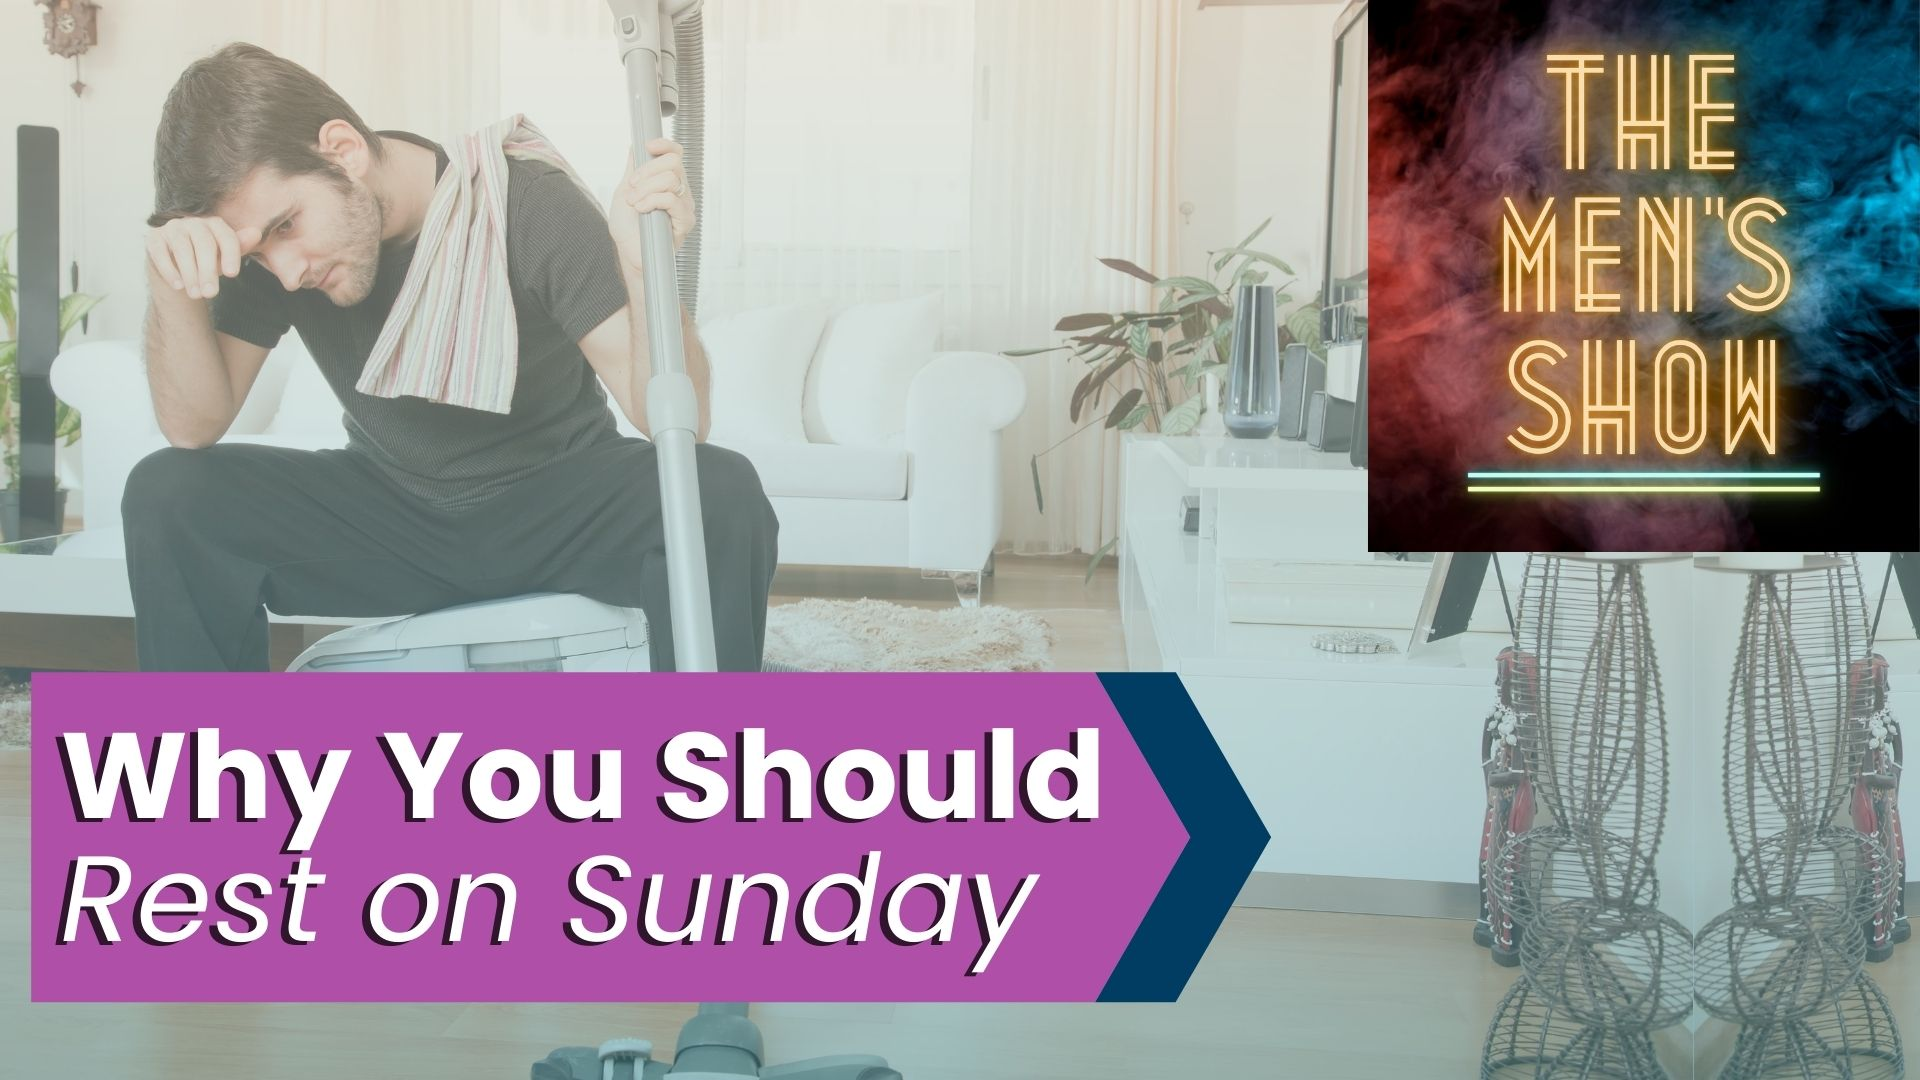 """""""The Sabbath: Day of Rest or Day of STRESS?"""" - Ep26 of the Catholic Men's Show w/ The Men"""